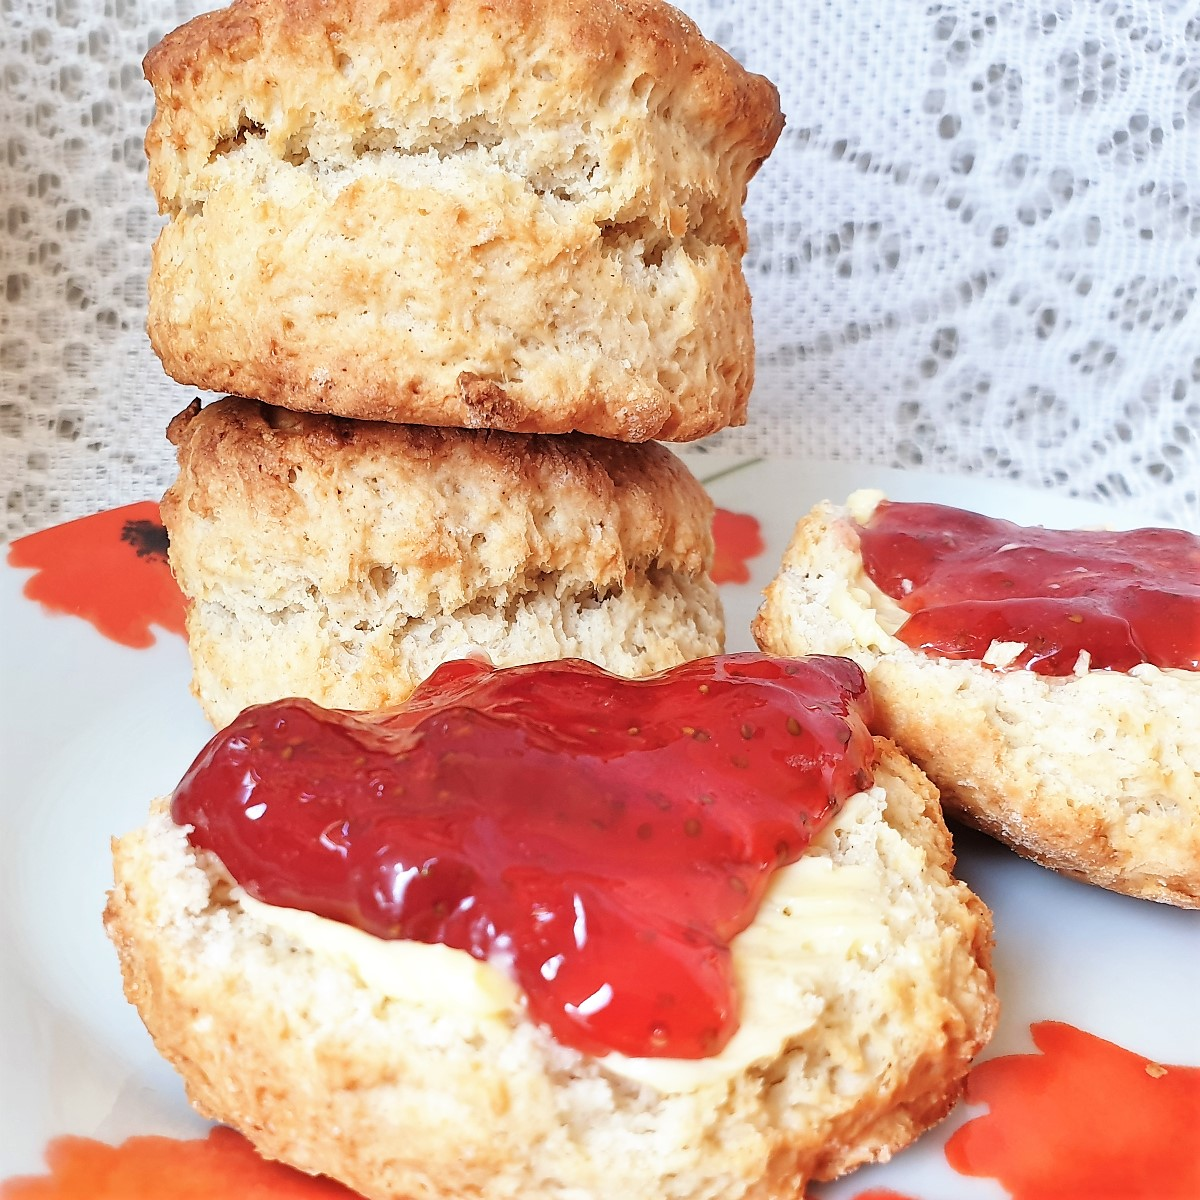 A scone covered in strawberry jam in front of a pile of scones.